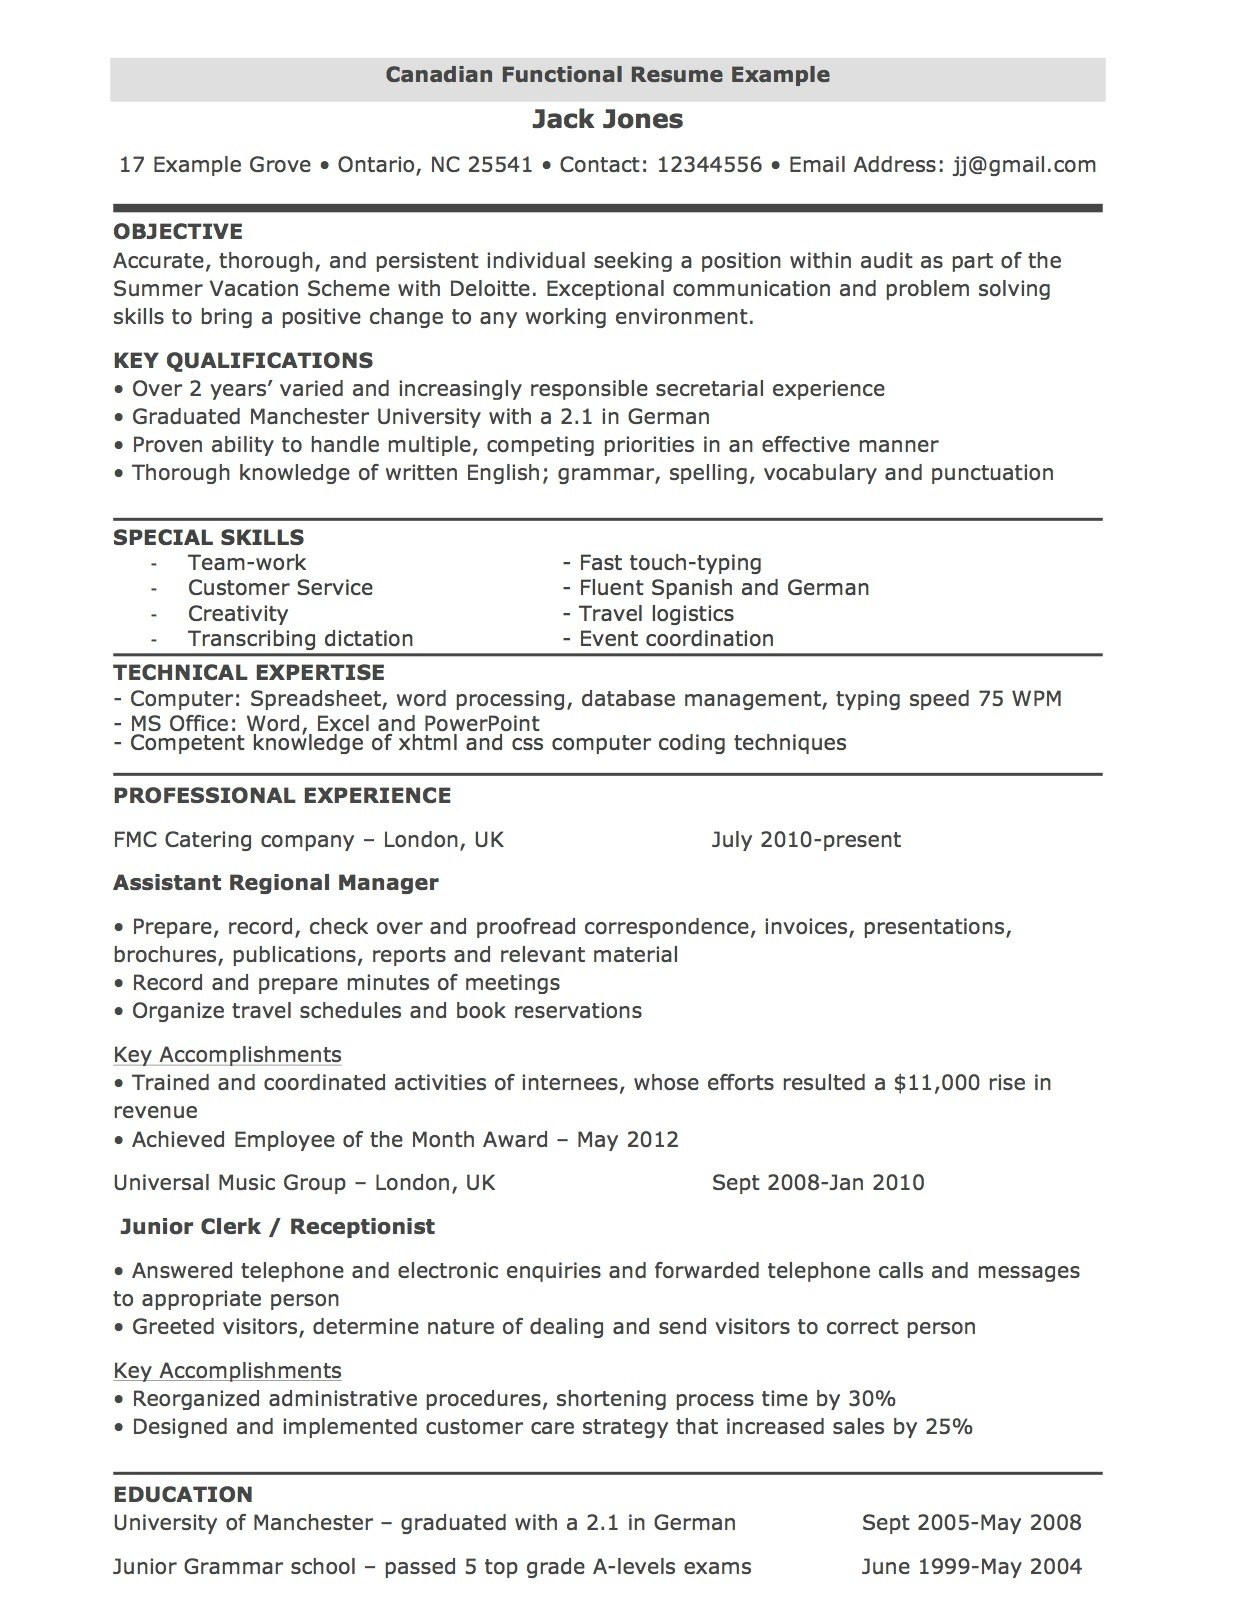 format of cv in resume style functional example folder office depot shrm template Resume Canadian Style Resume Format